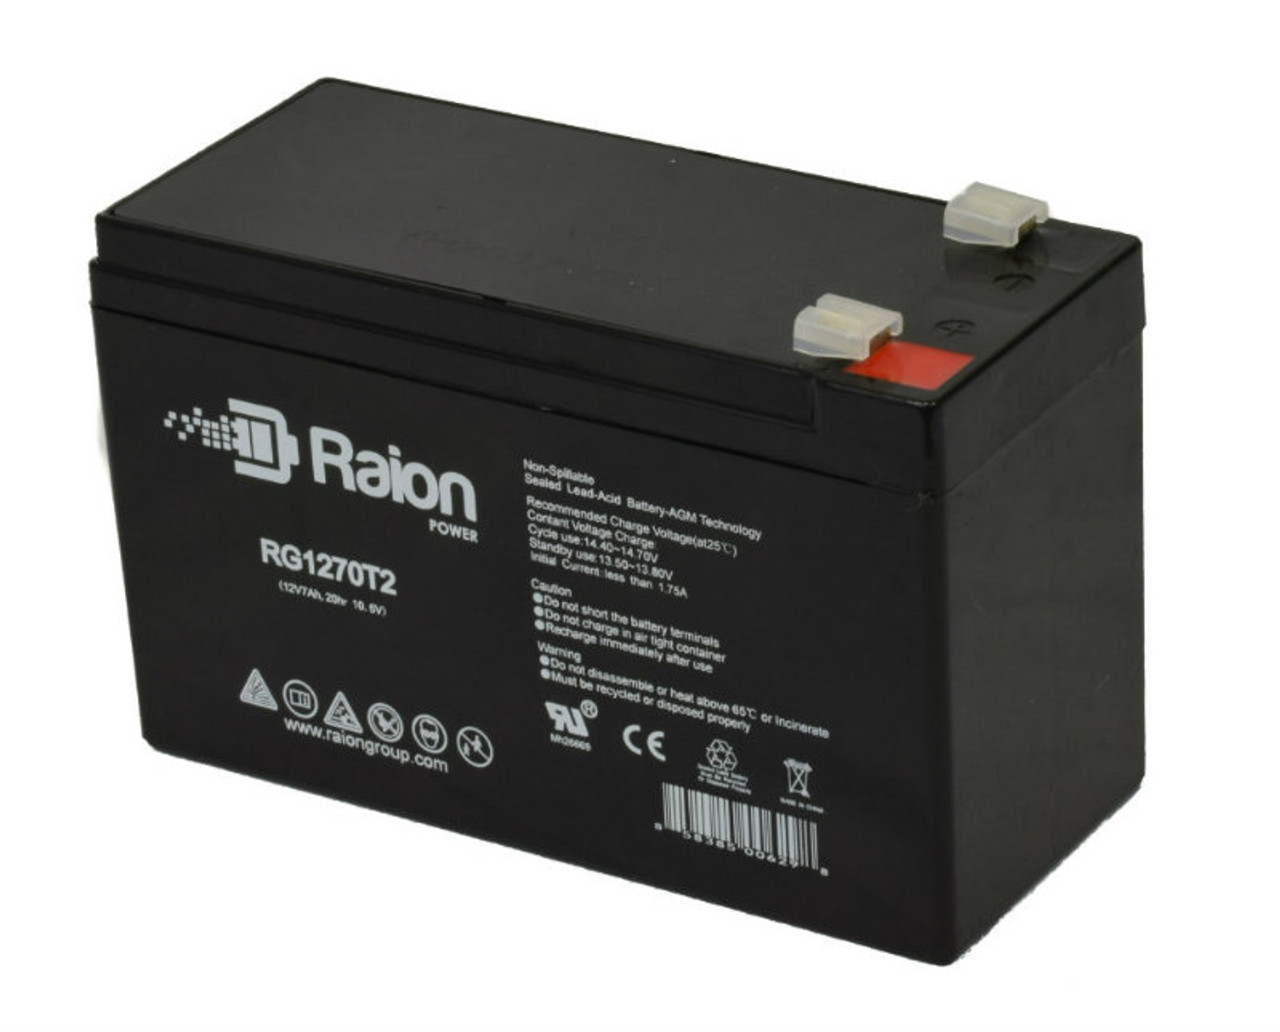 Raion Power RG1270T1 Replacement Battery for Ultratech UT-1280